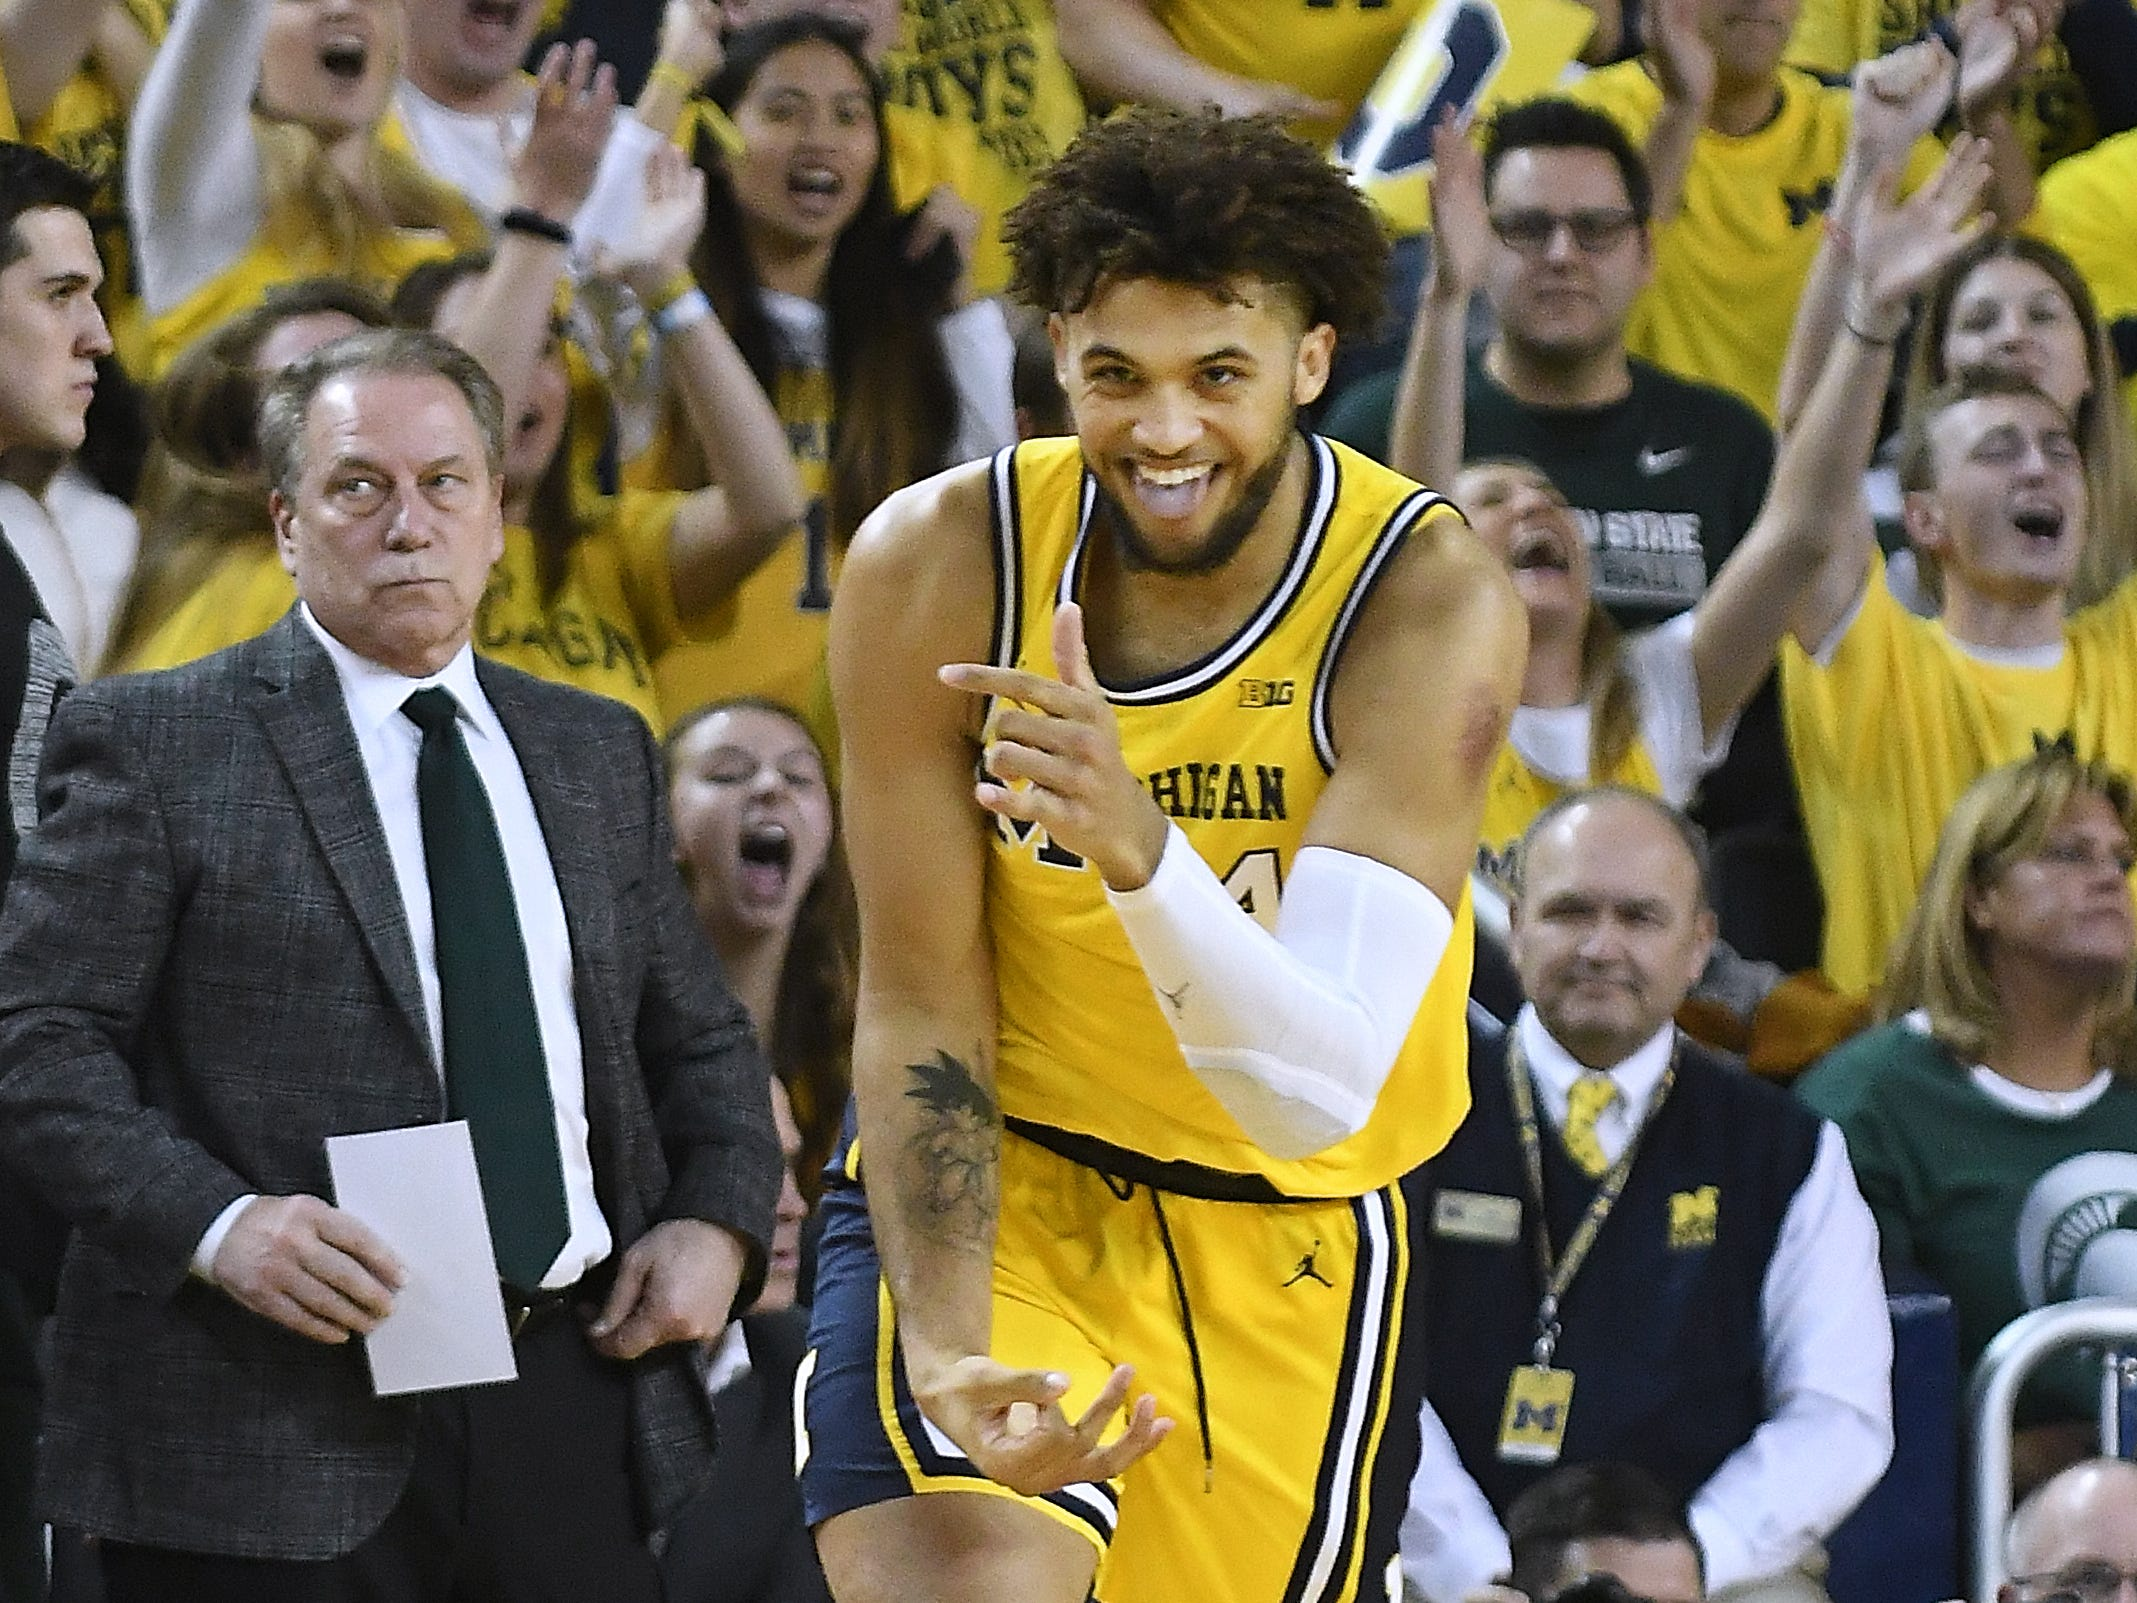 Michigan's Isaiah Livers celebrates after hitting a first-half basket with Michigan State head coach Tom Izzo looking on in the background.